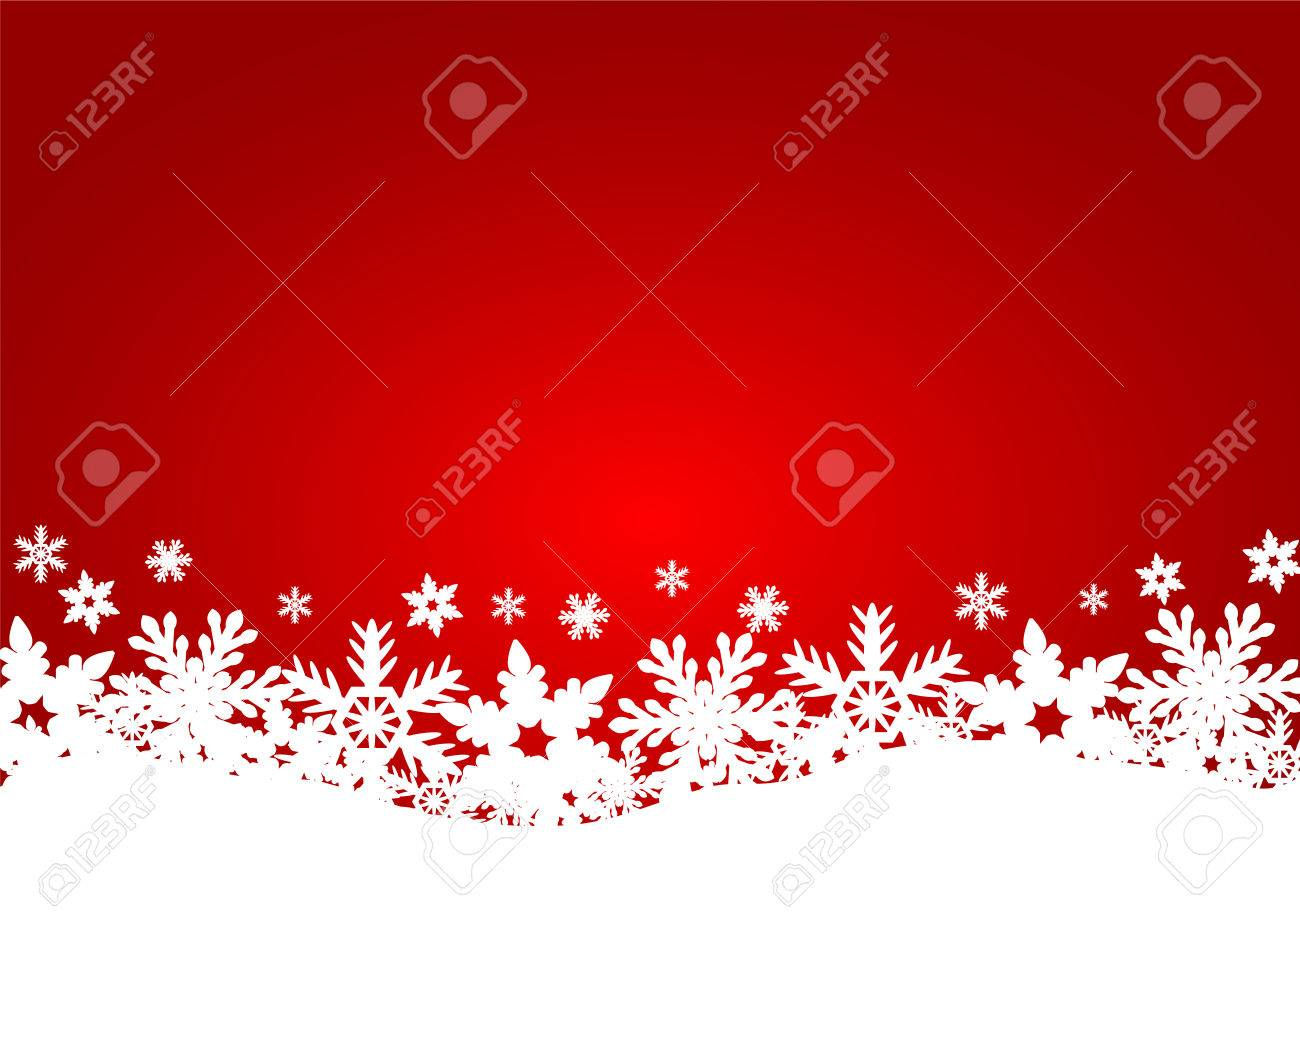 Christmas red background - 33952027